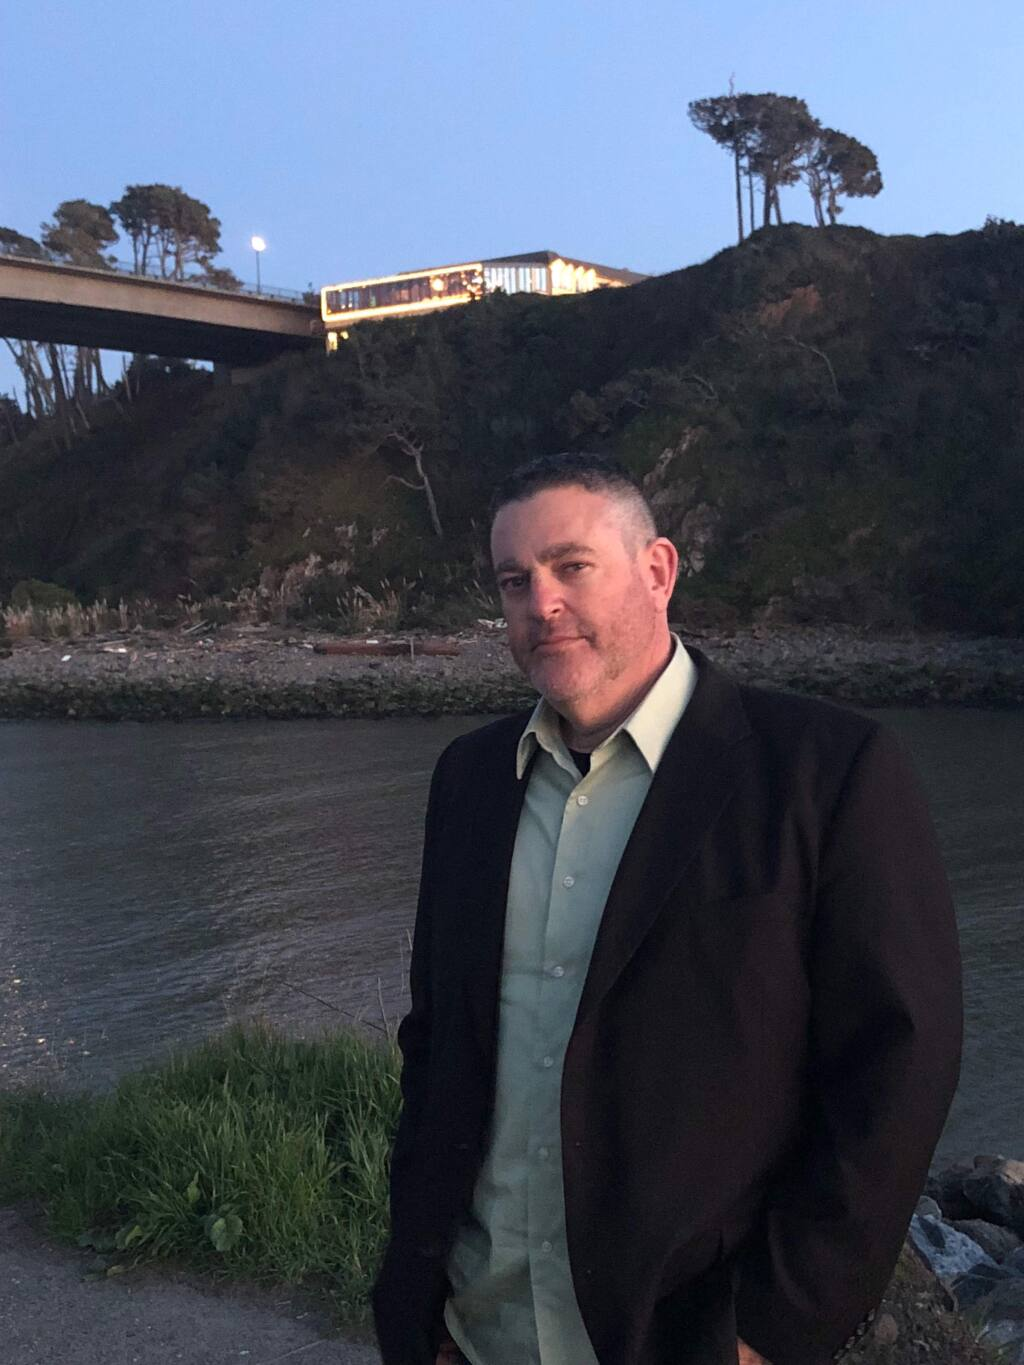 Ukiah's Jake Bernie has been doing comedy for 20 years, at places like Konocti Harbor Inn and Punch Line Sacramento.